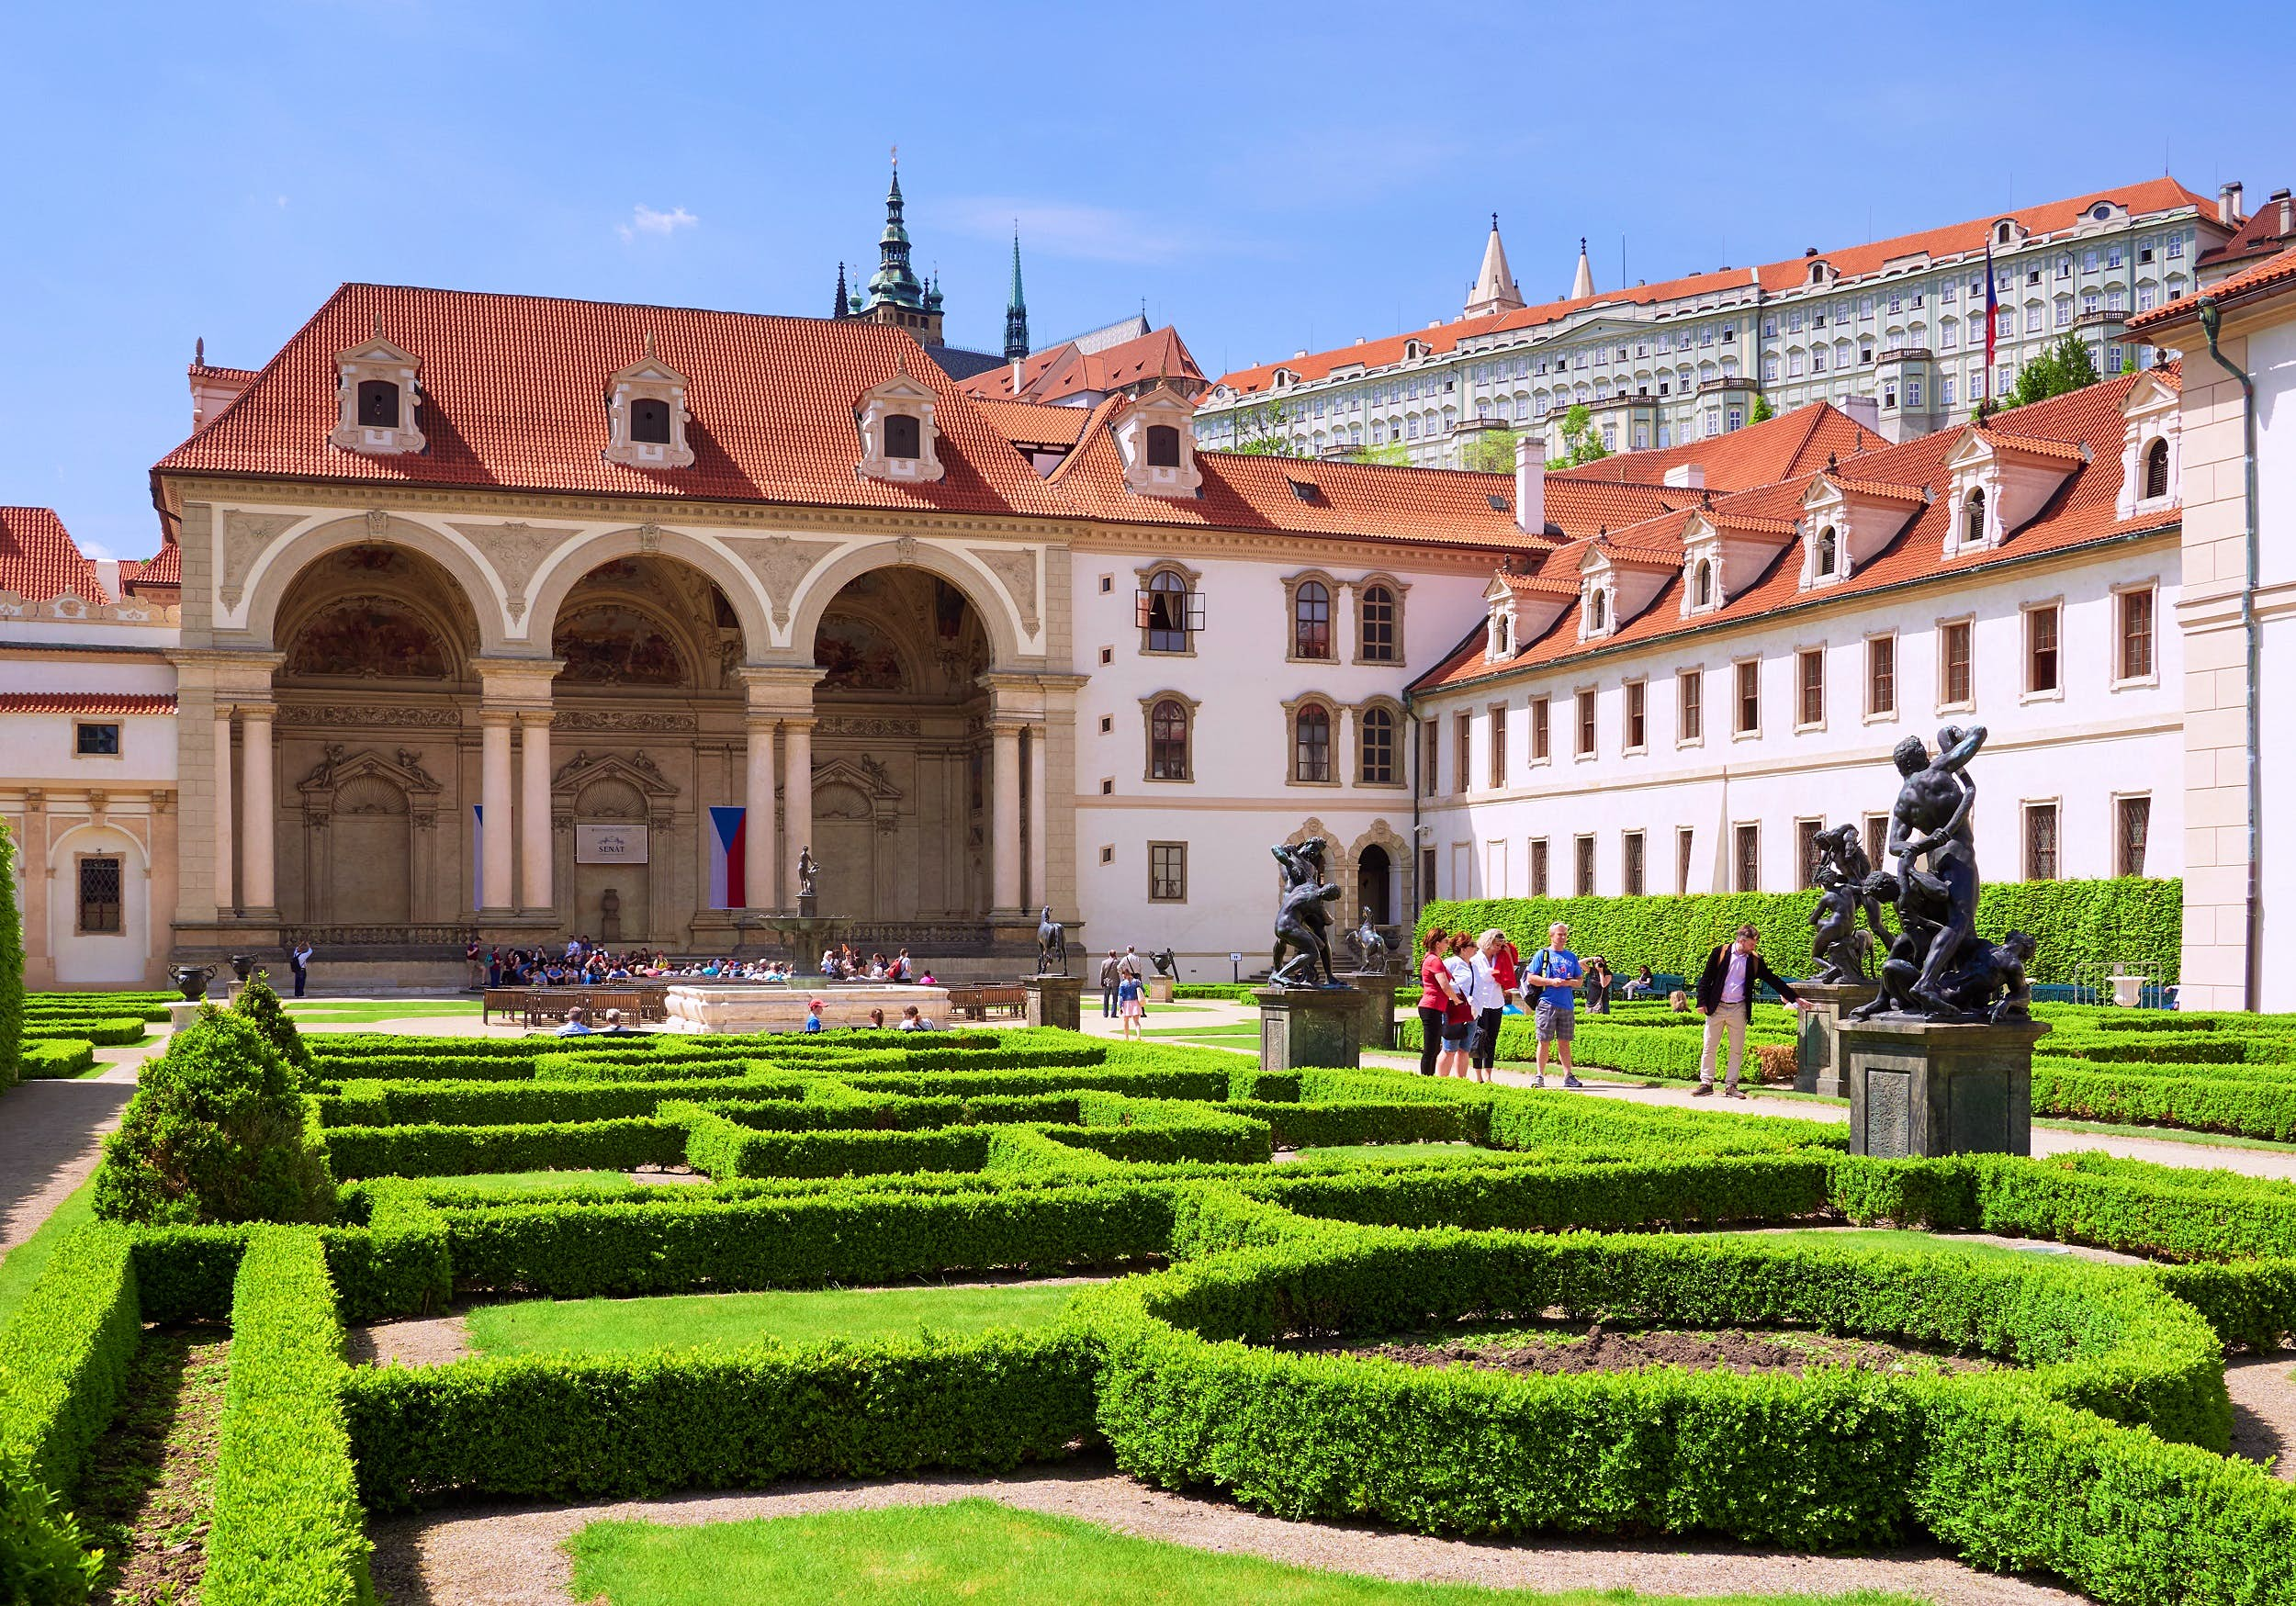 In the foreground is a manicured set of lawns and hedges that break up the garden into various geometric shapes; the garden is backed by a historical Wallenstein Palace